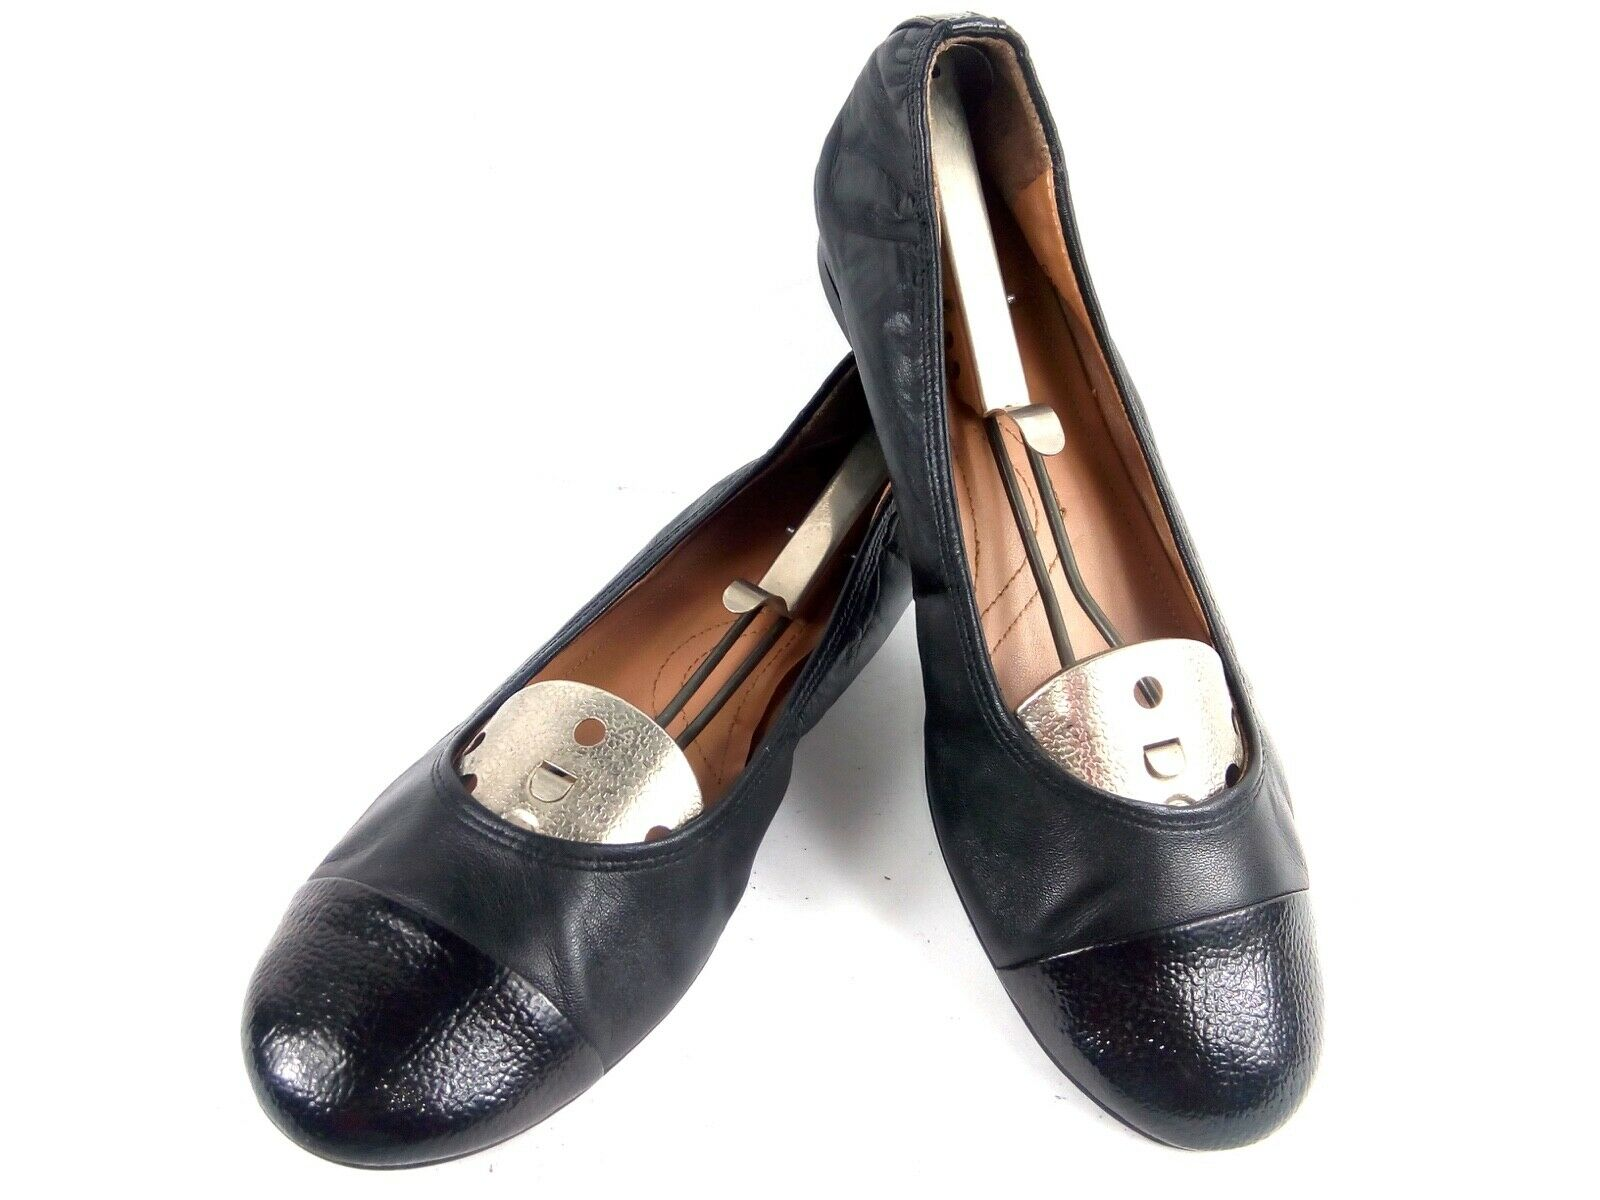 Tahari Carly Women's 9M Black Leather Cap Toe Ballet Slip-On Flats shoes